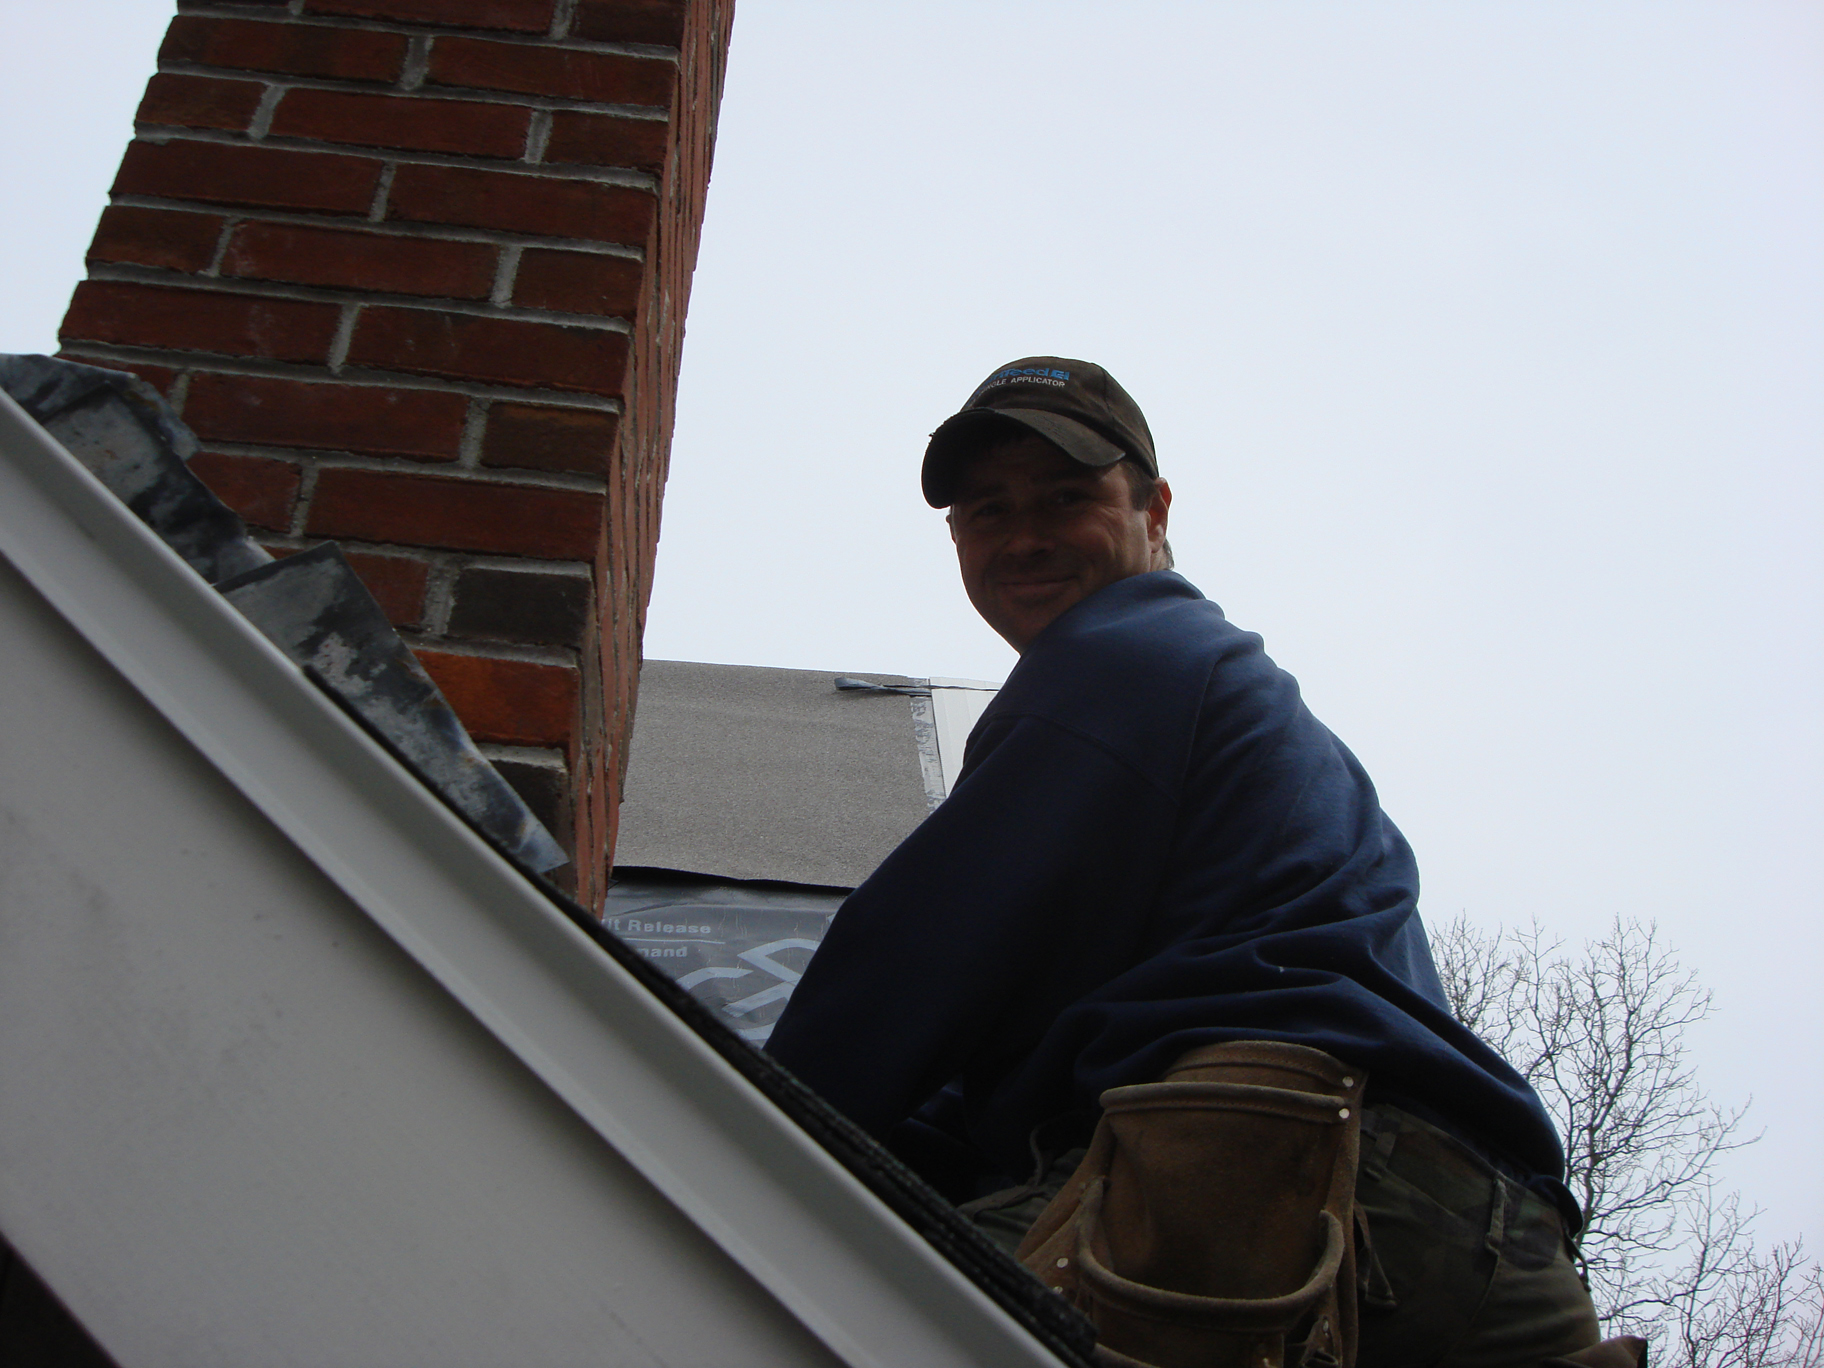 A Roofing Business   WordPress.com